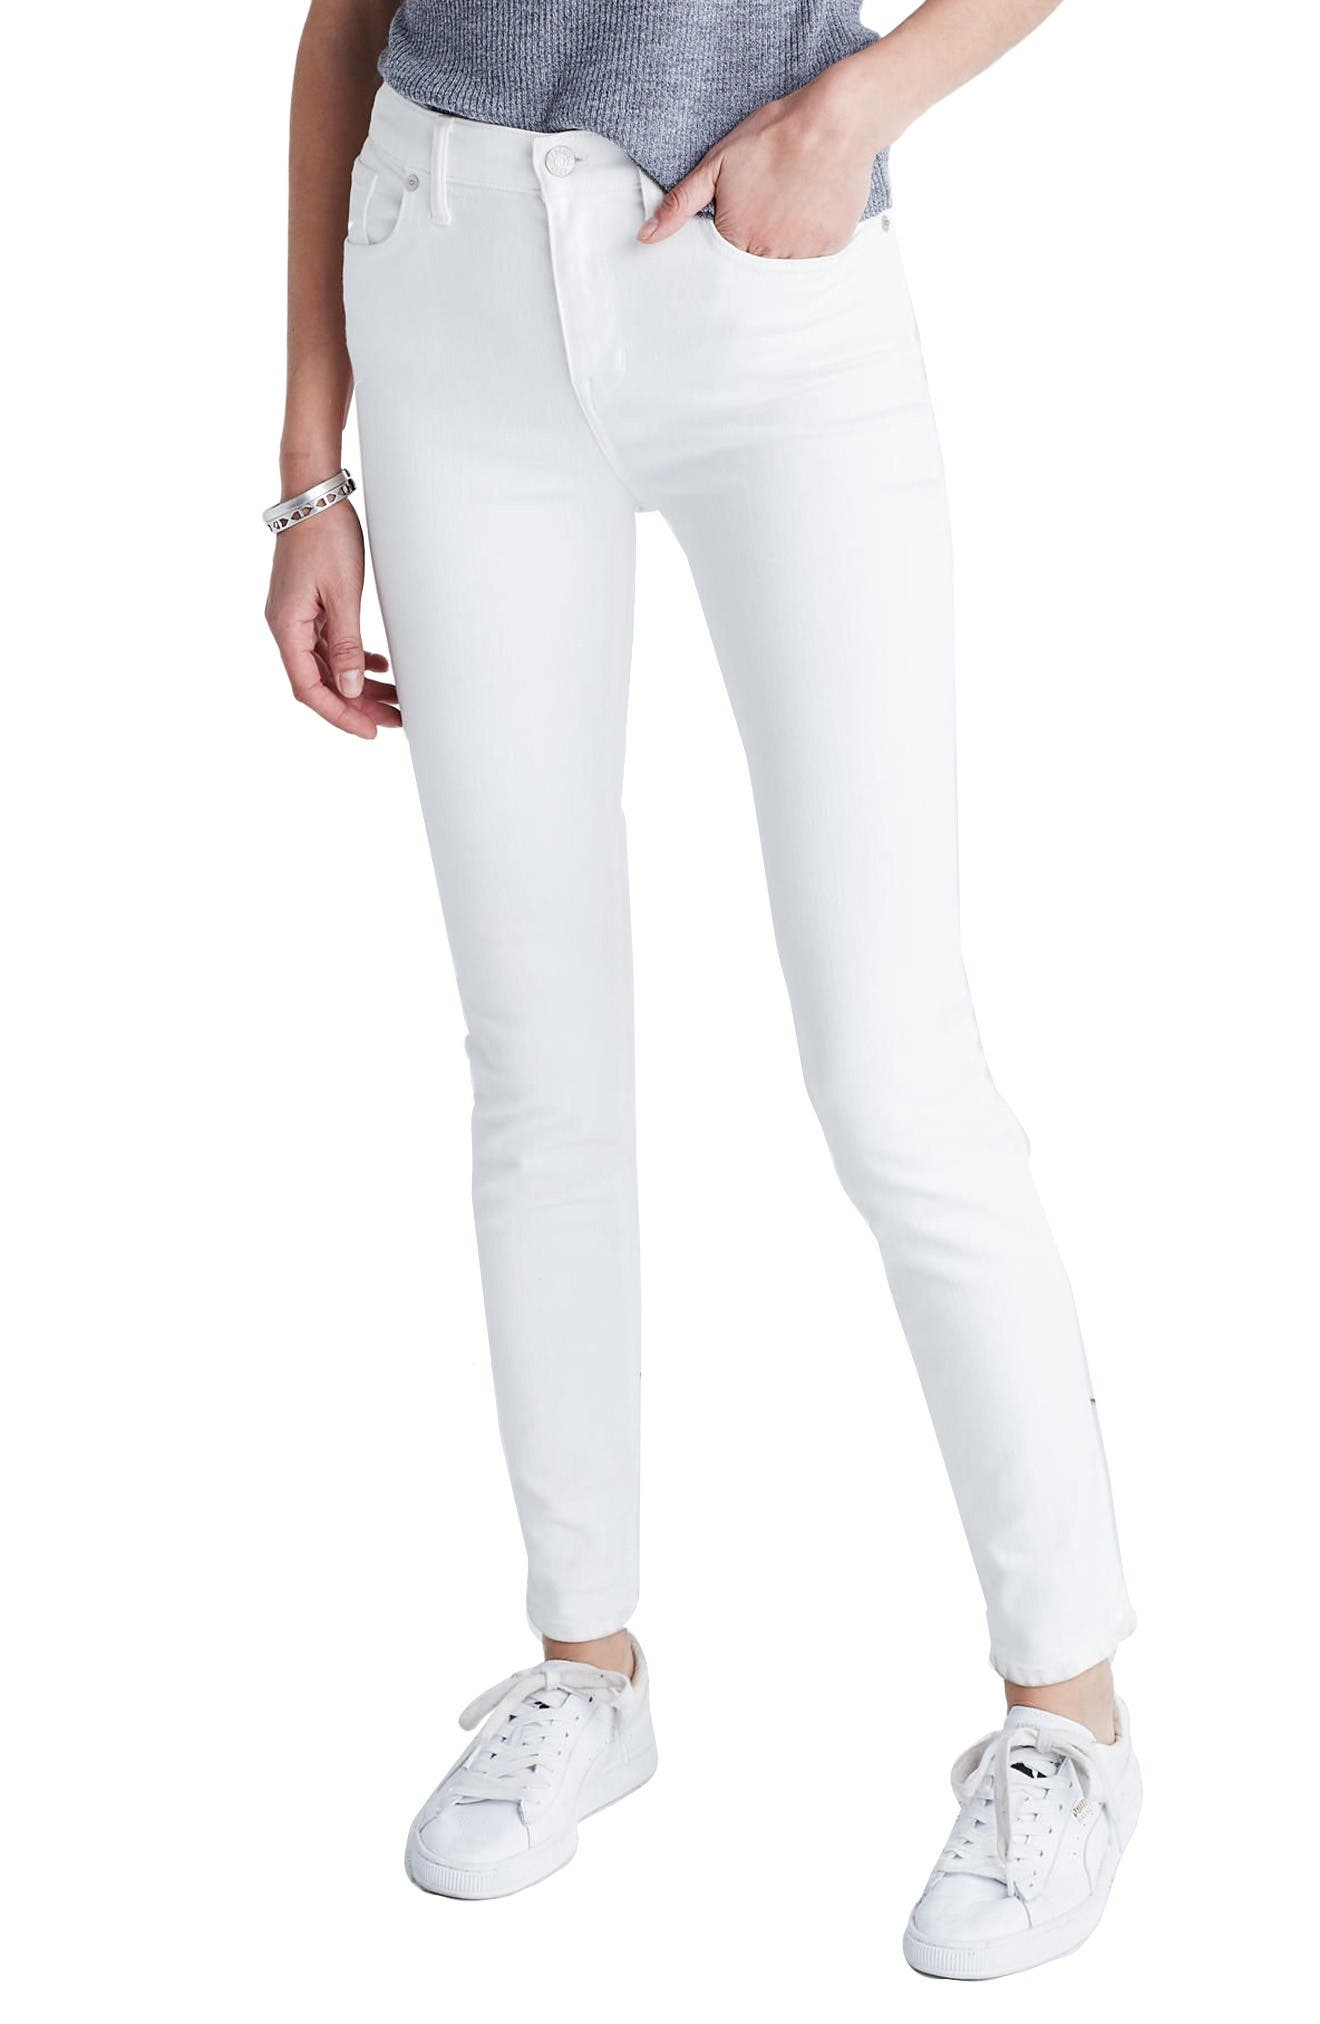 Alternate Image 1 Selected - Madewell High Riser Skinny Jeans (Pure White)